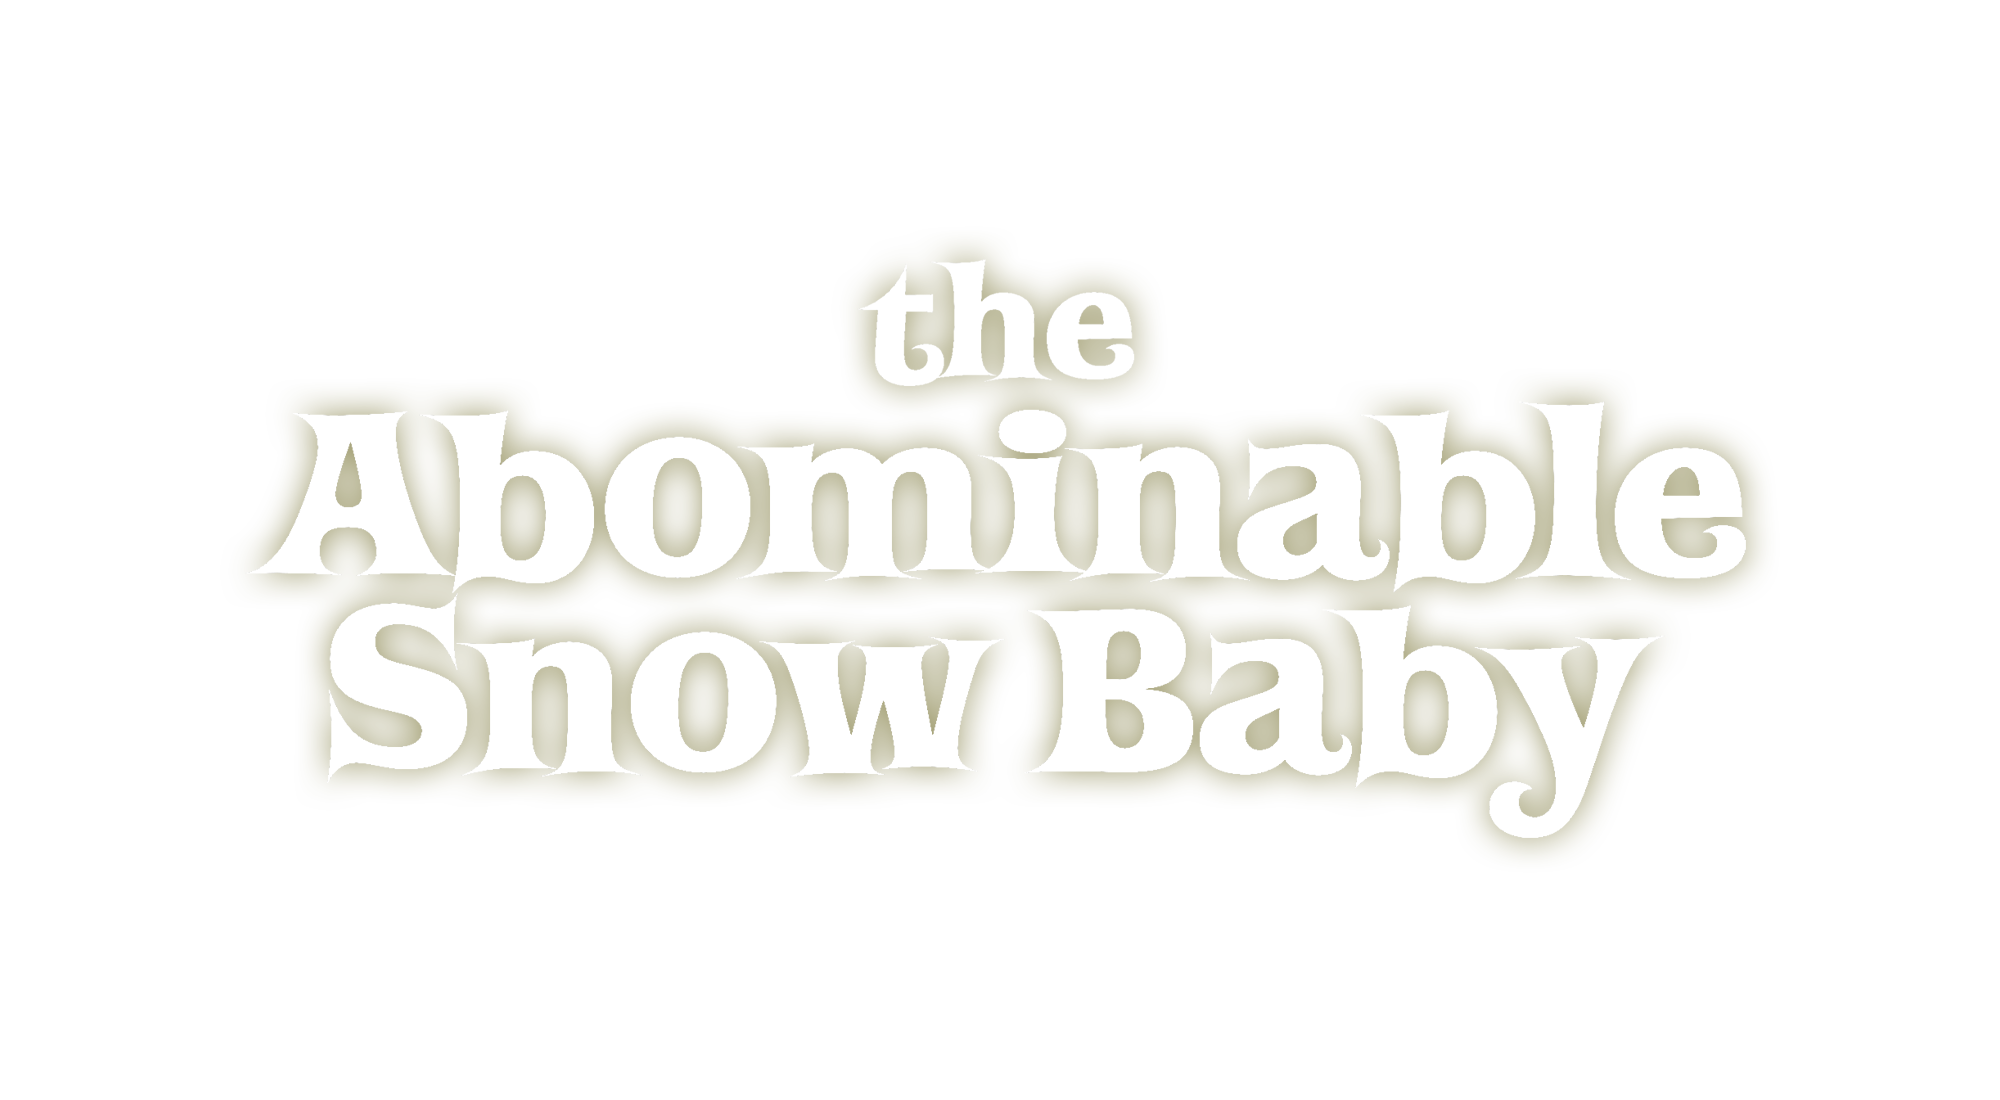 The Abominable Snow Baby logo